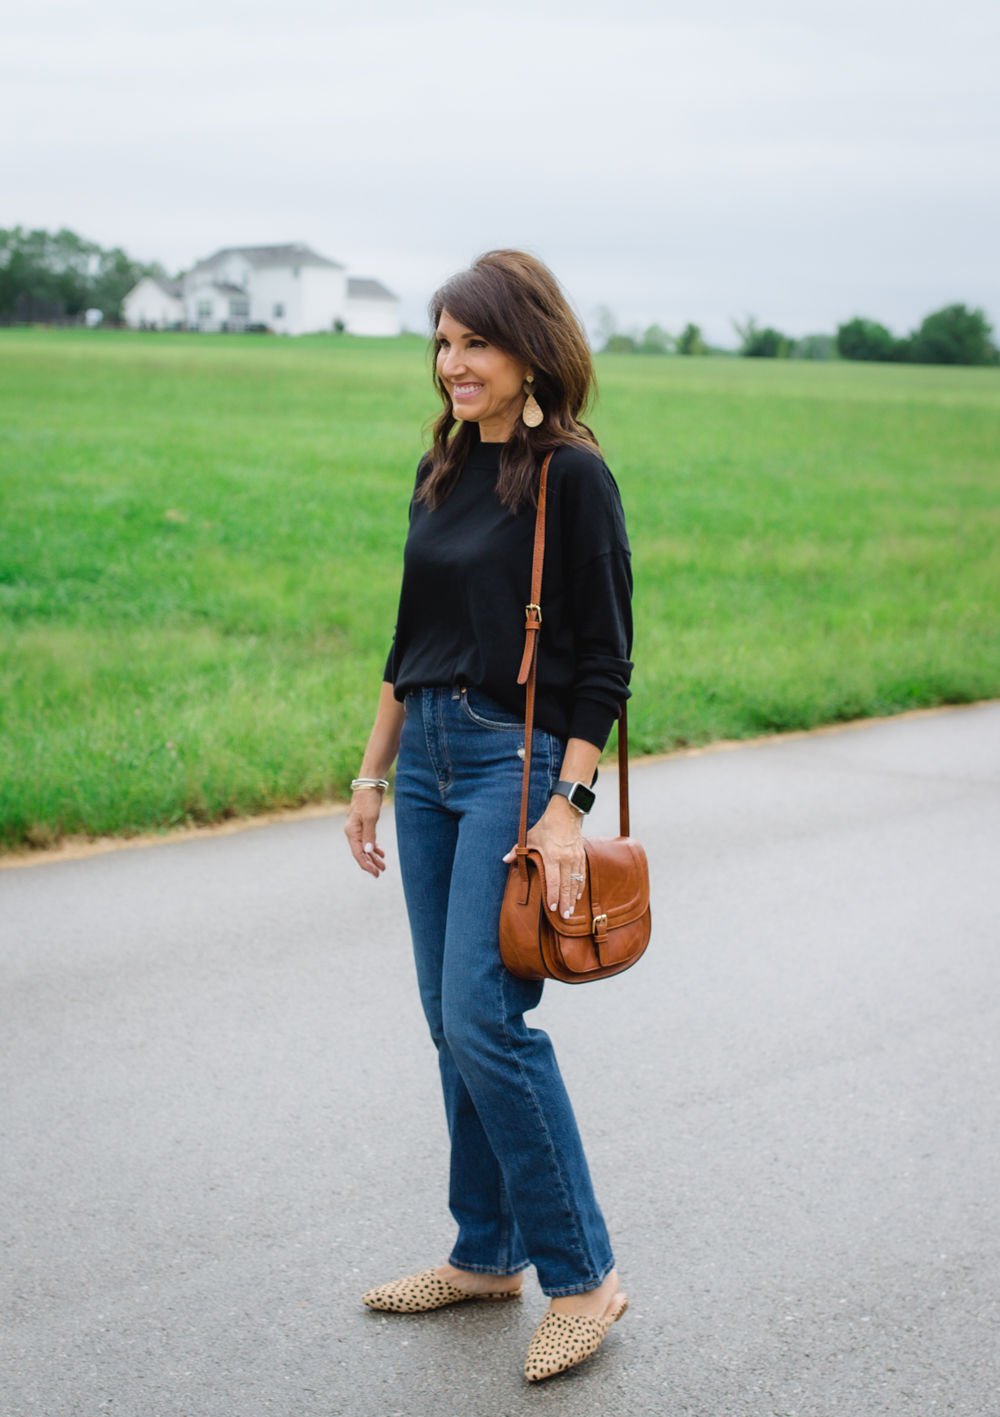 Fall Style from Gap: 22 Days of Fall Fashion